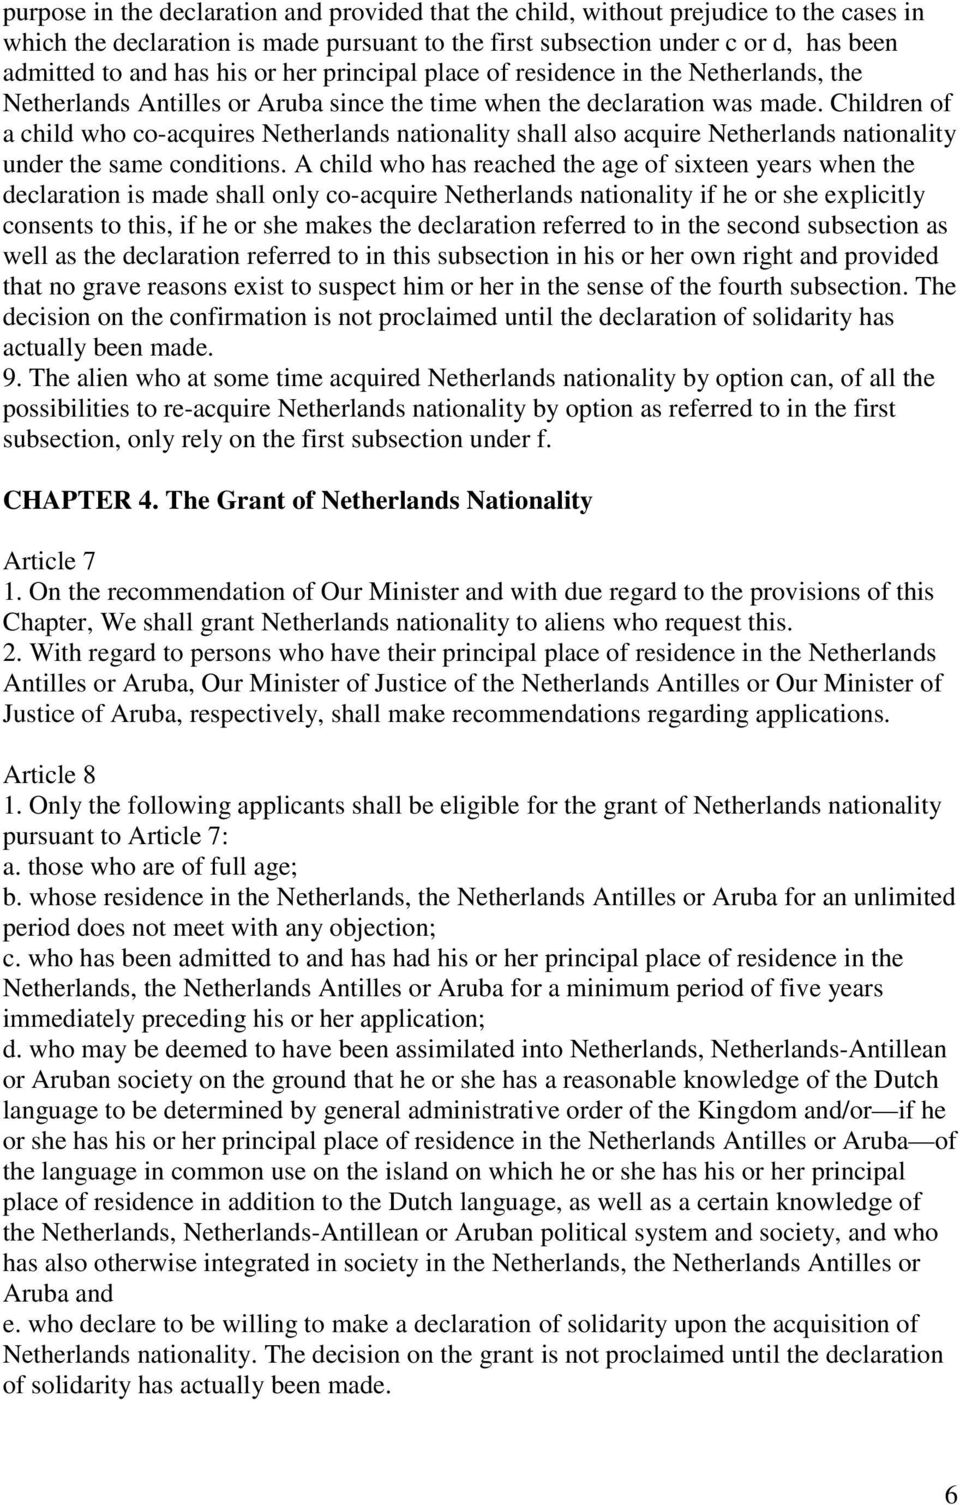 Children of a child who co-acquires Netherlands nationality shall also acquire Netherlands nationality under the same conditions.